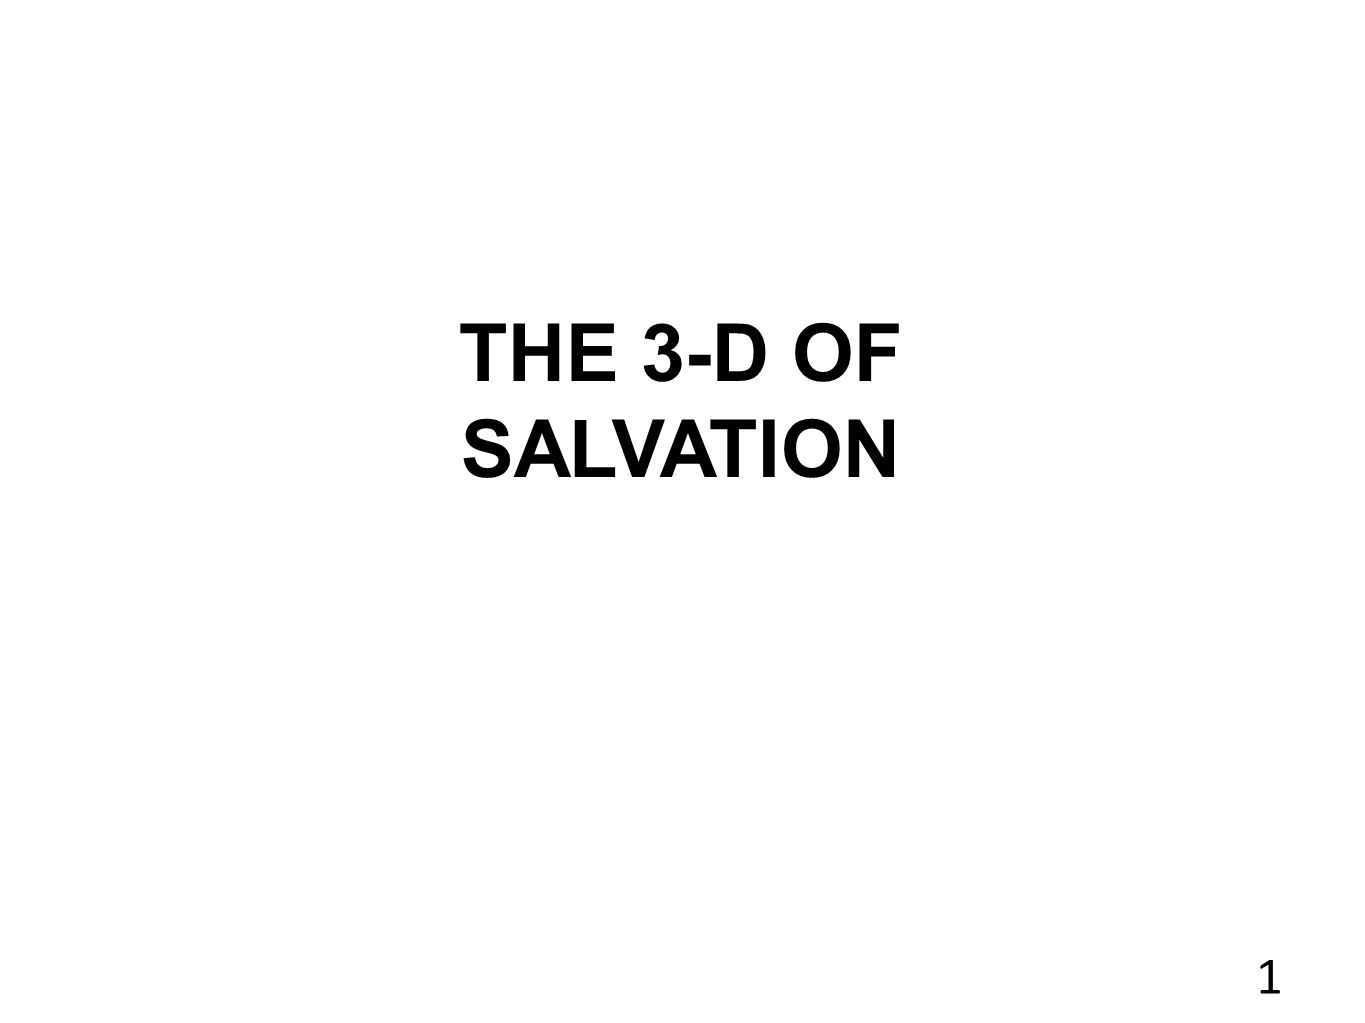 THE 3-D OF SALVATION 1